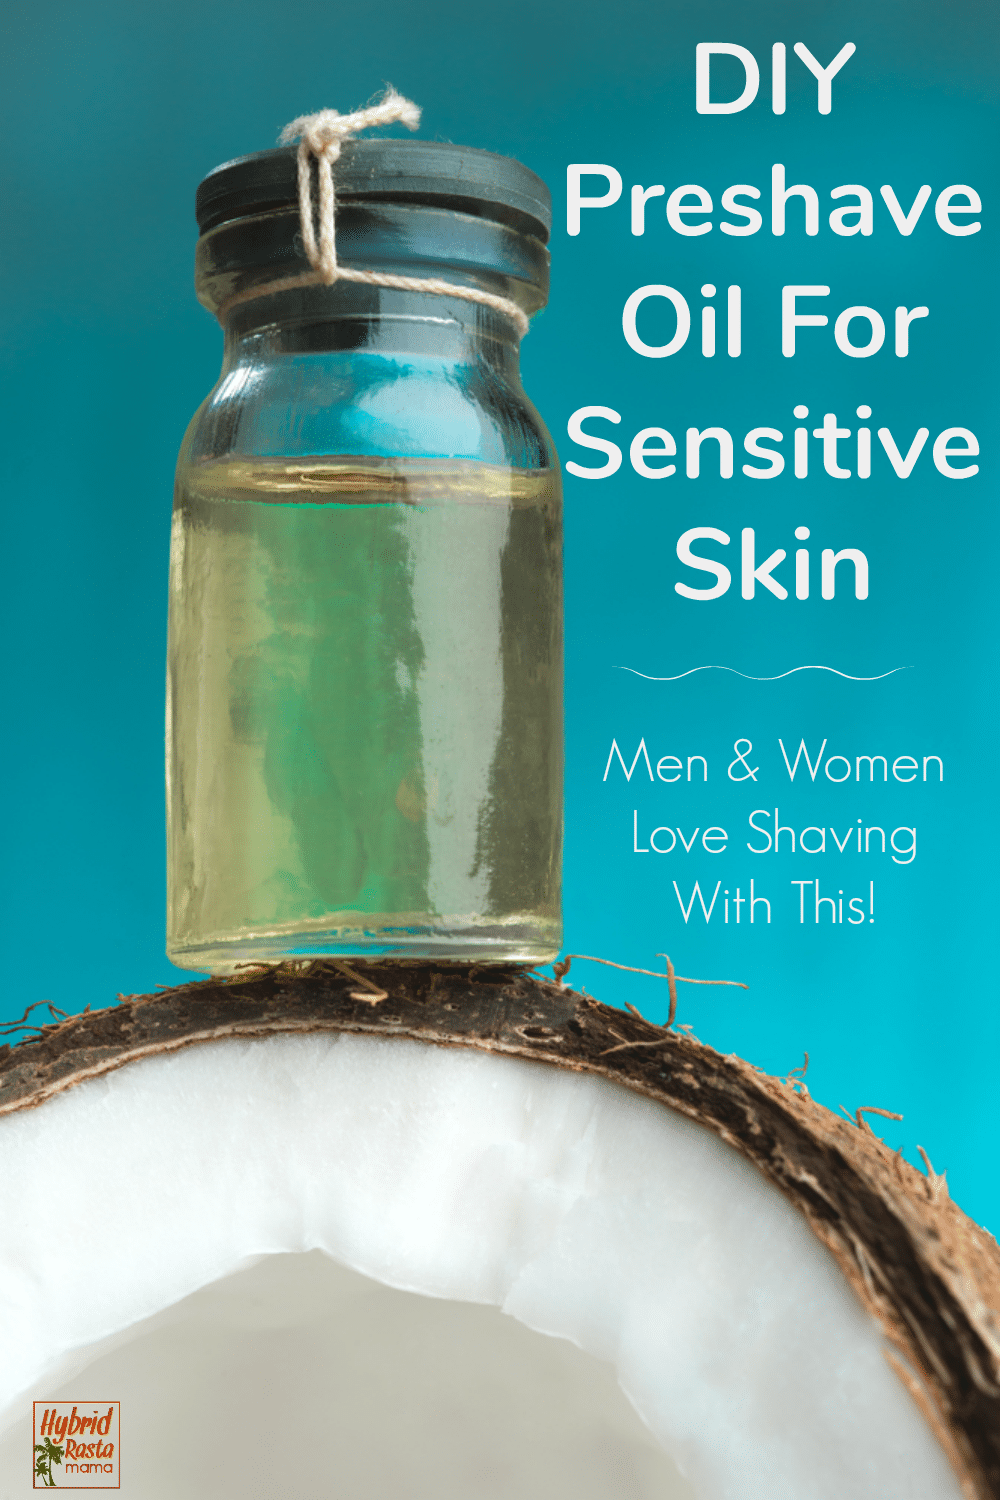 A bottle of coconut oil preshave oil for sensitive skin on top of a coconut